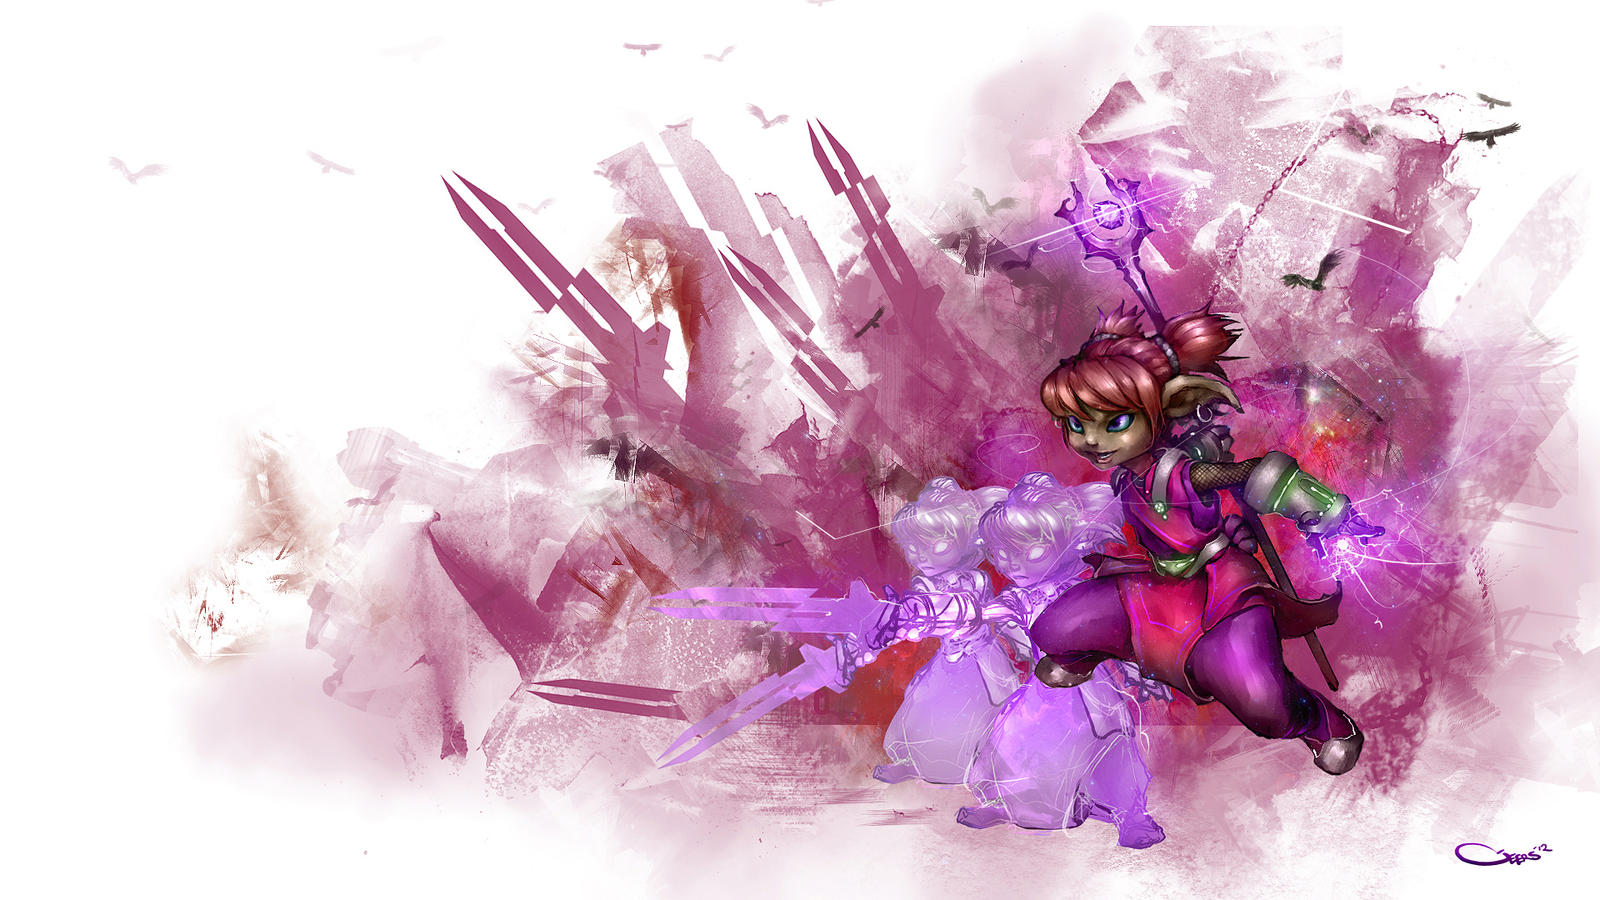 asura mesmer by darrengeers on deviantart